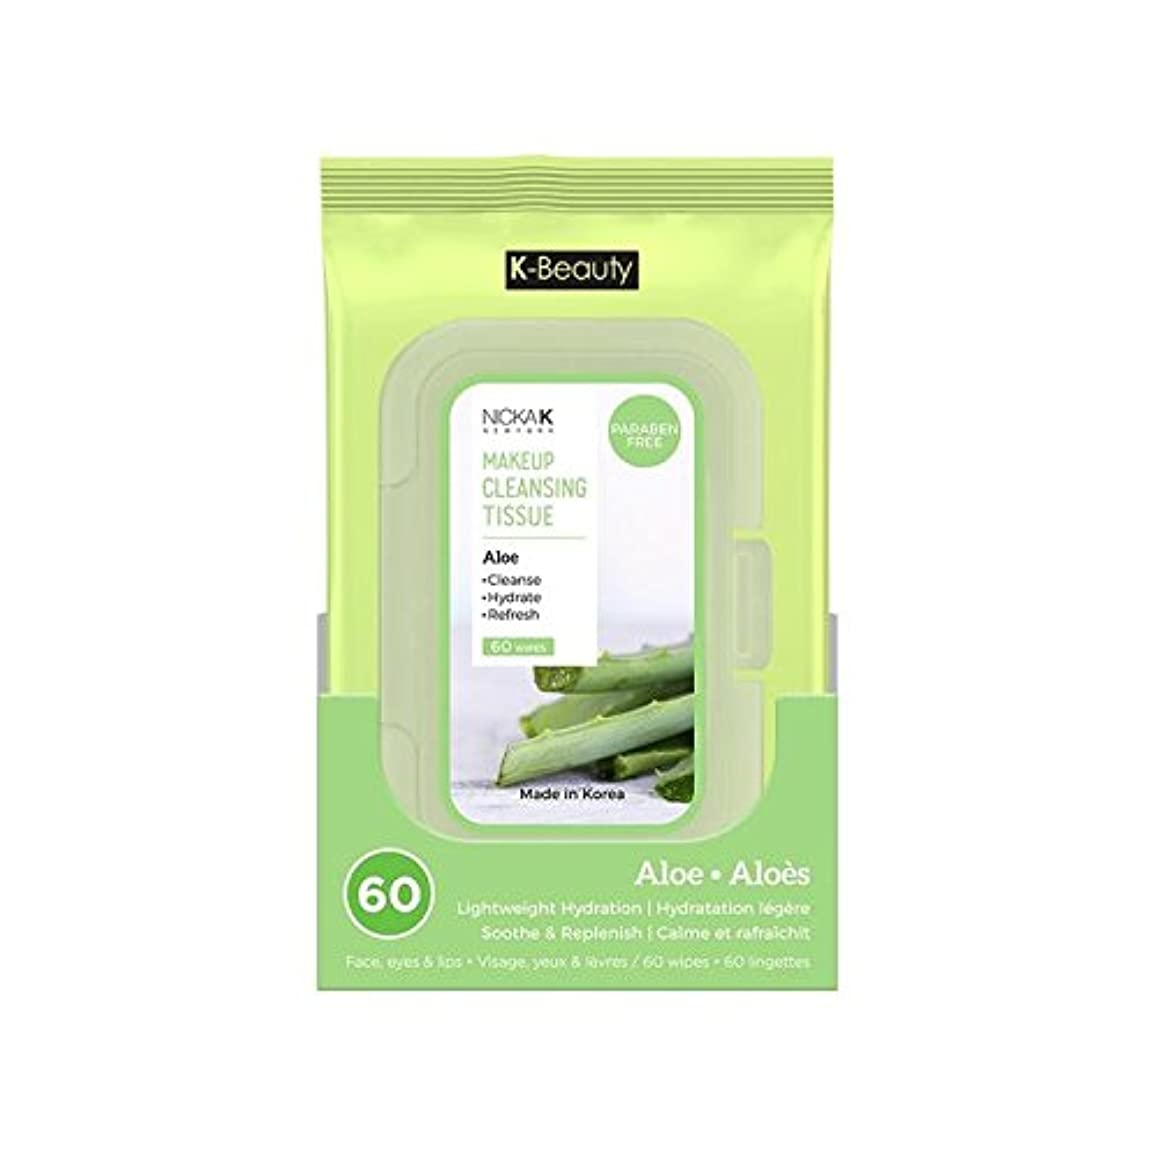 ママ追加する自我(3 Pack) NICKA K Make Up Cleansing Tissue - Aloe (並行輸入品)